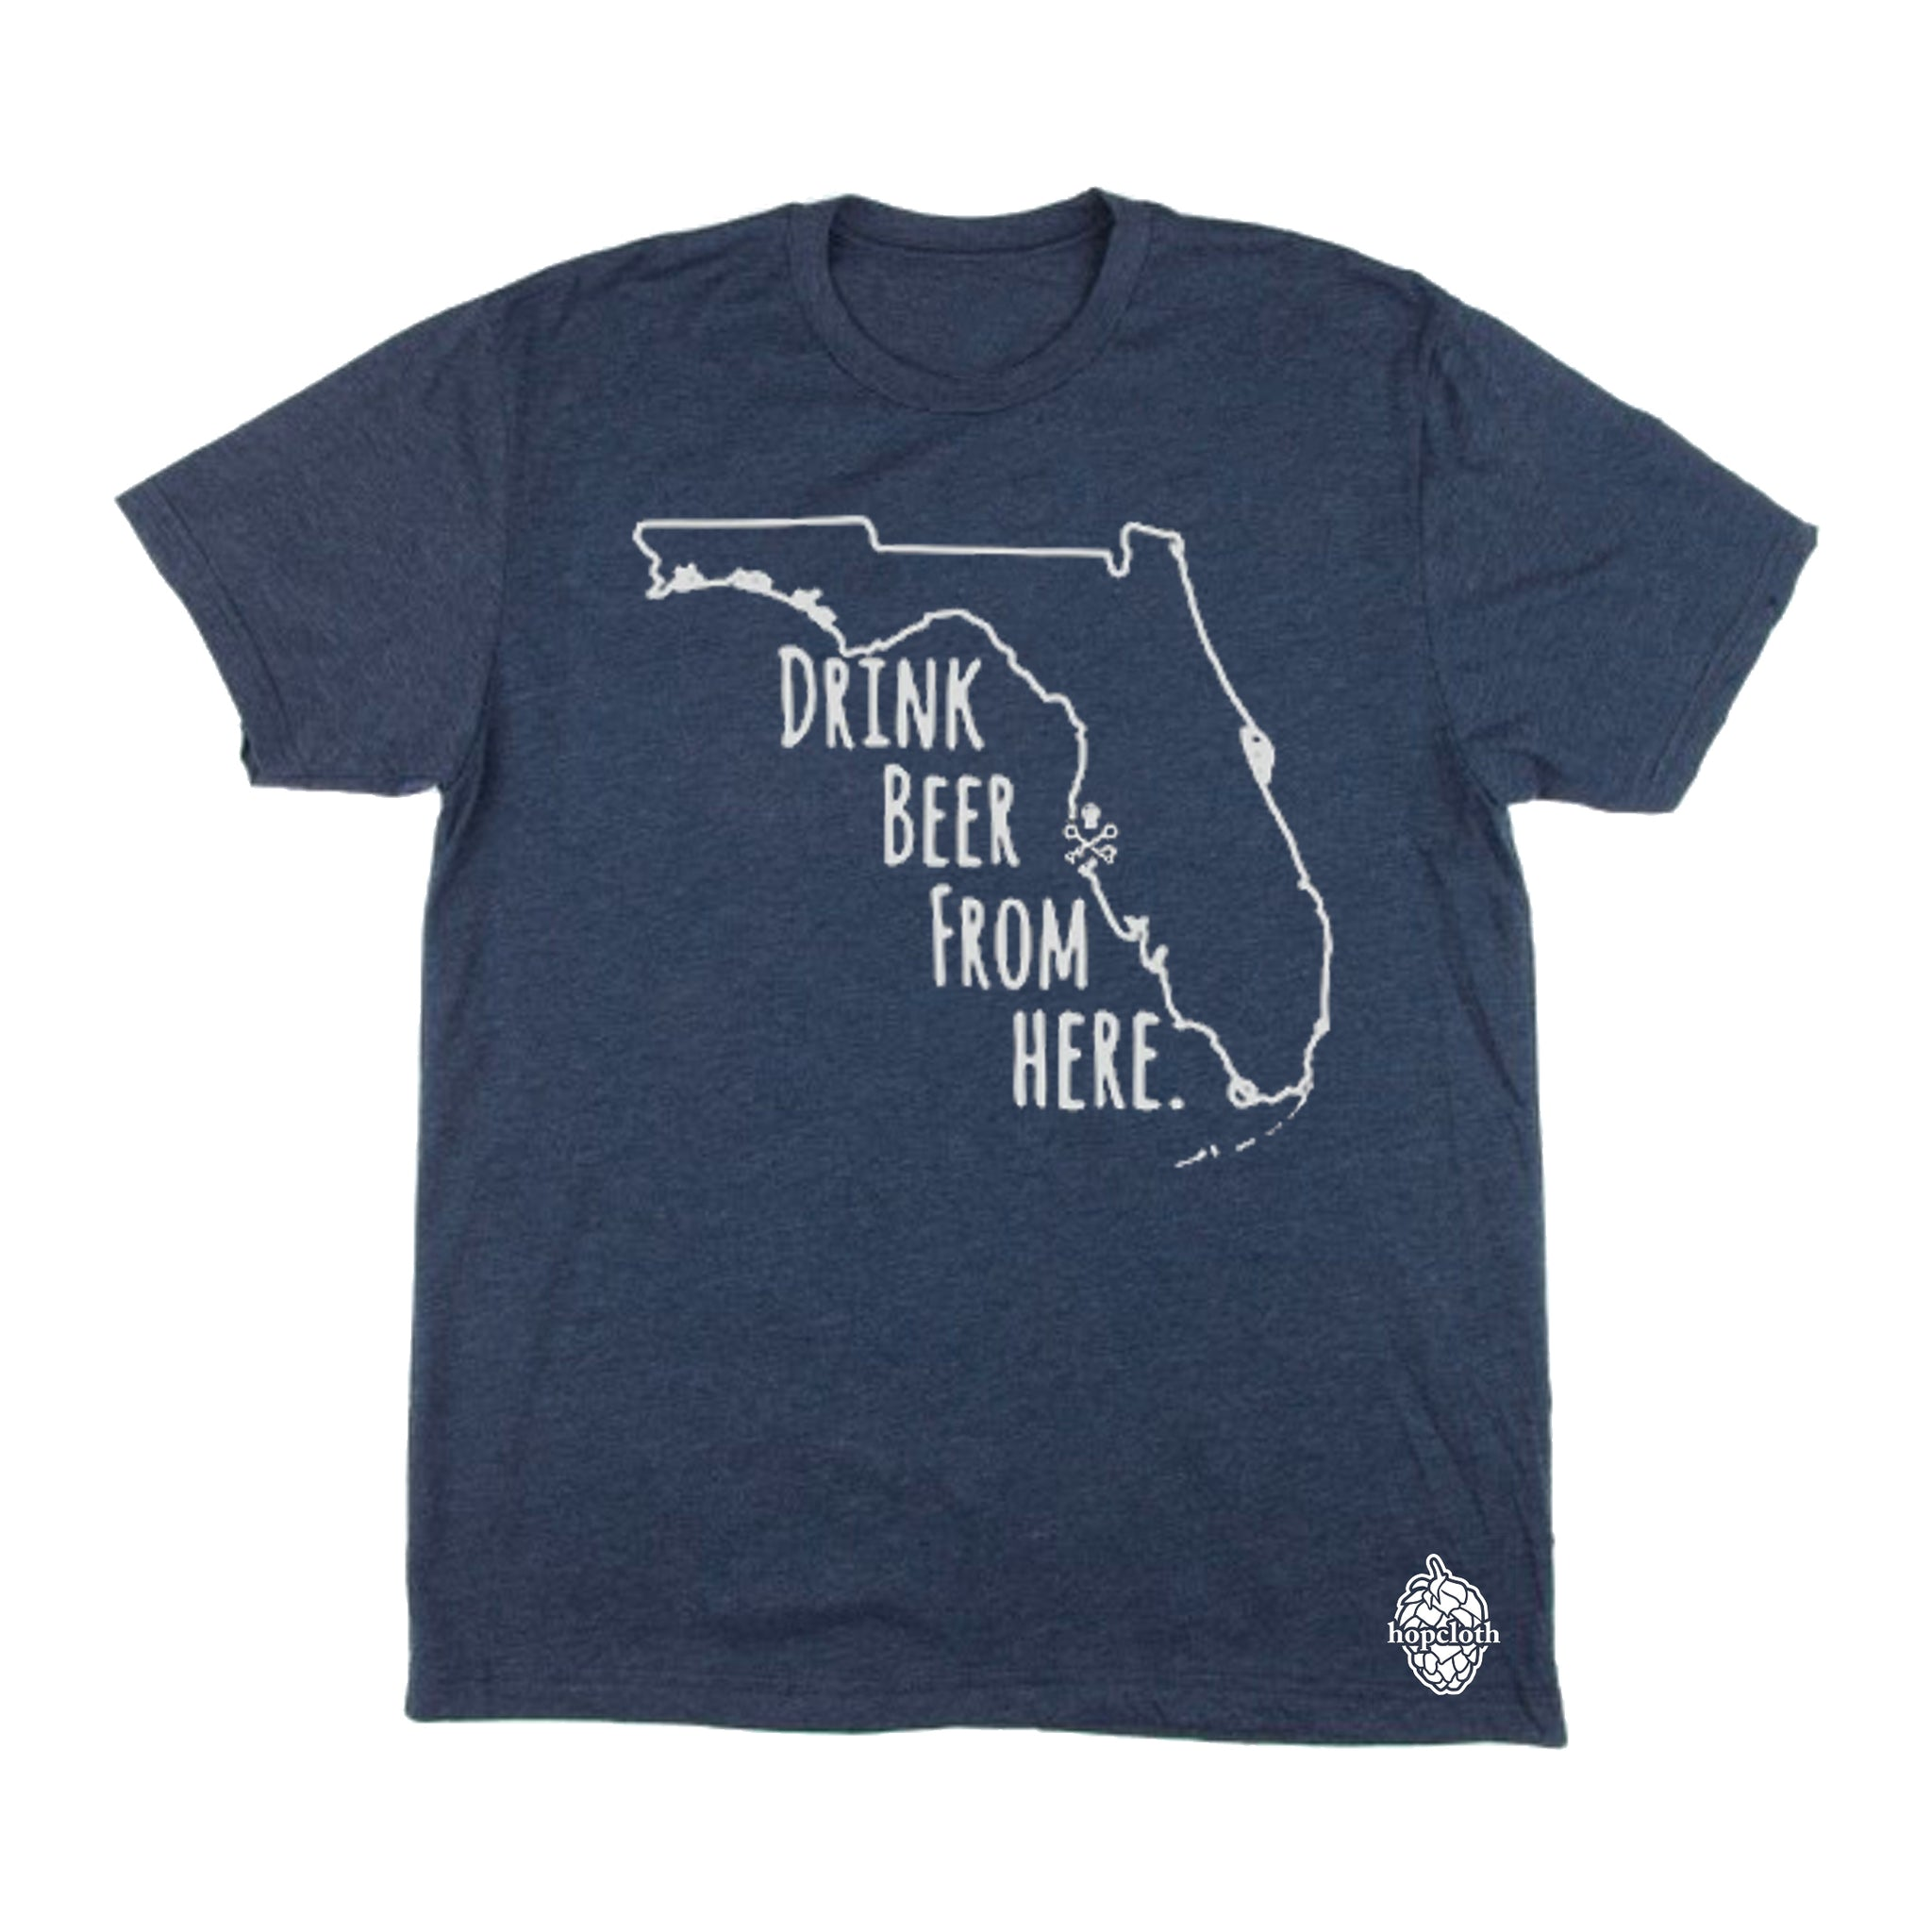 Drink Beer From Here - Navy